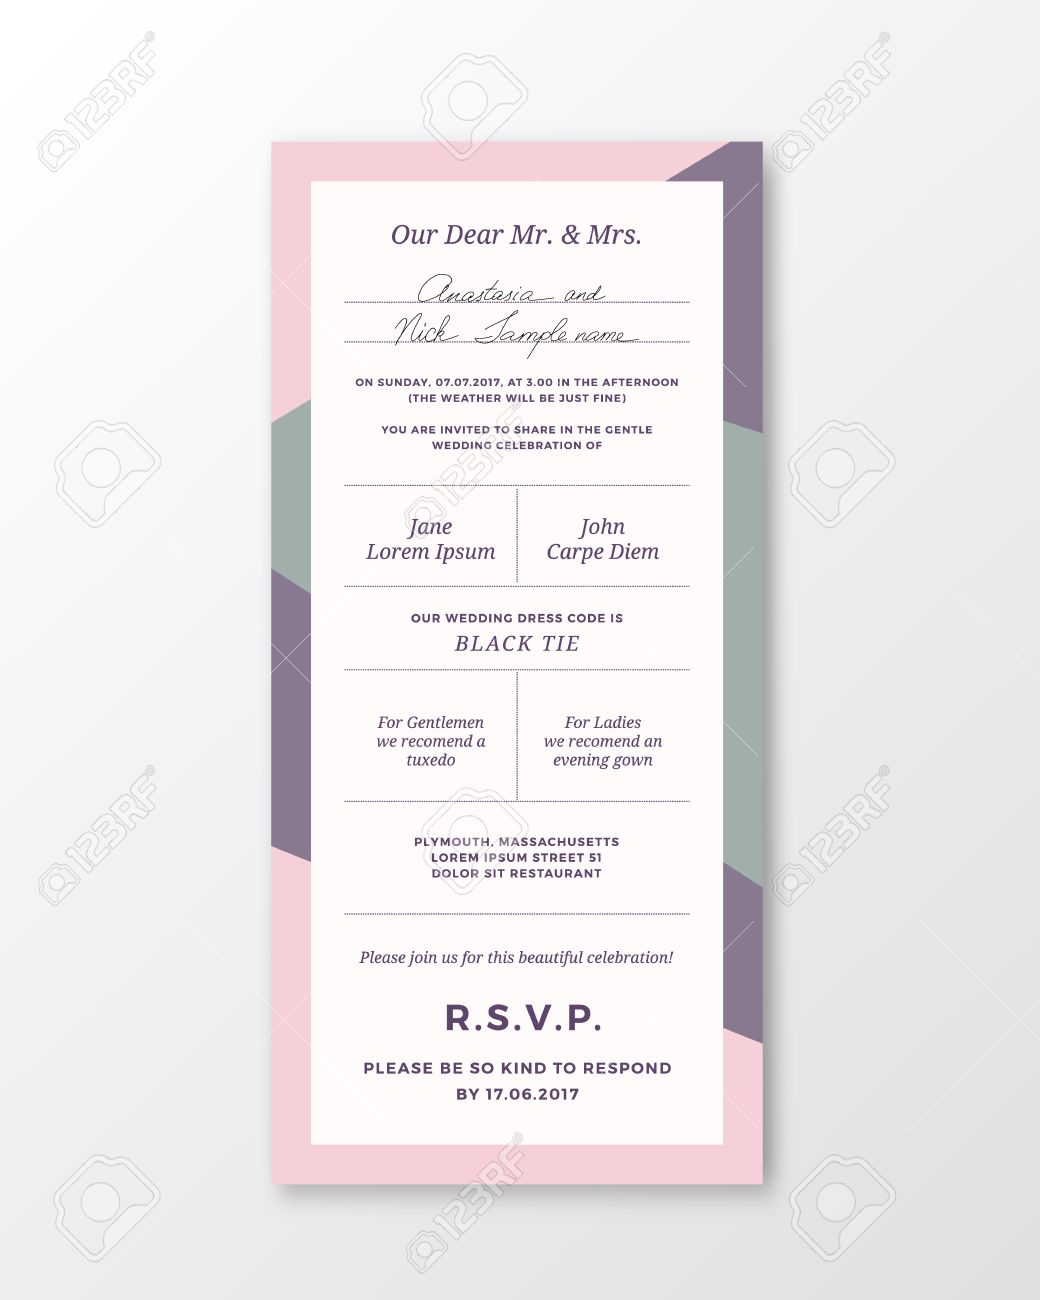 Vector wedding invitation template modern typography and pastel vector wedding invitation template modern typography and pastel violet pink colors classy design stopboris Images